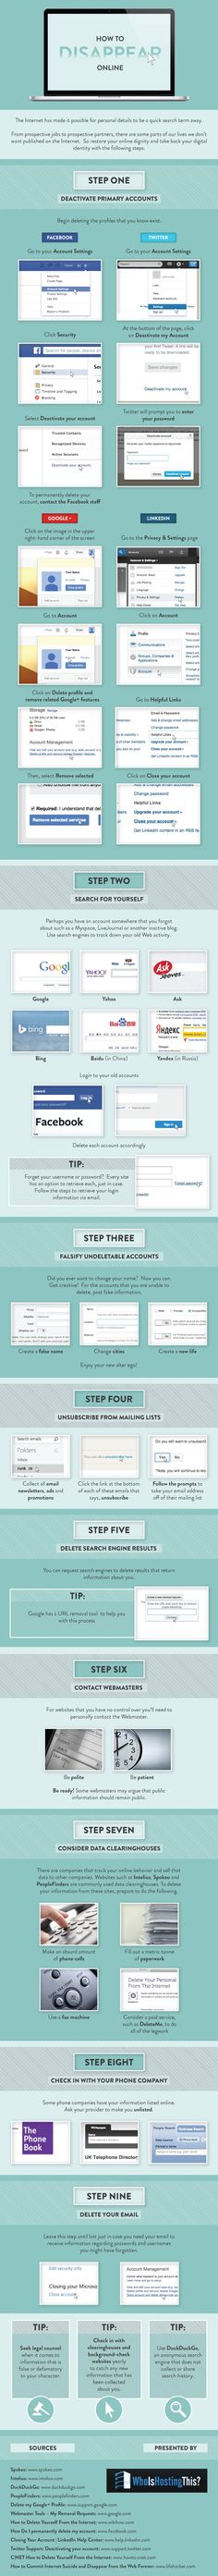 How to Disappear Online - Imgur